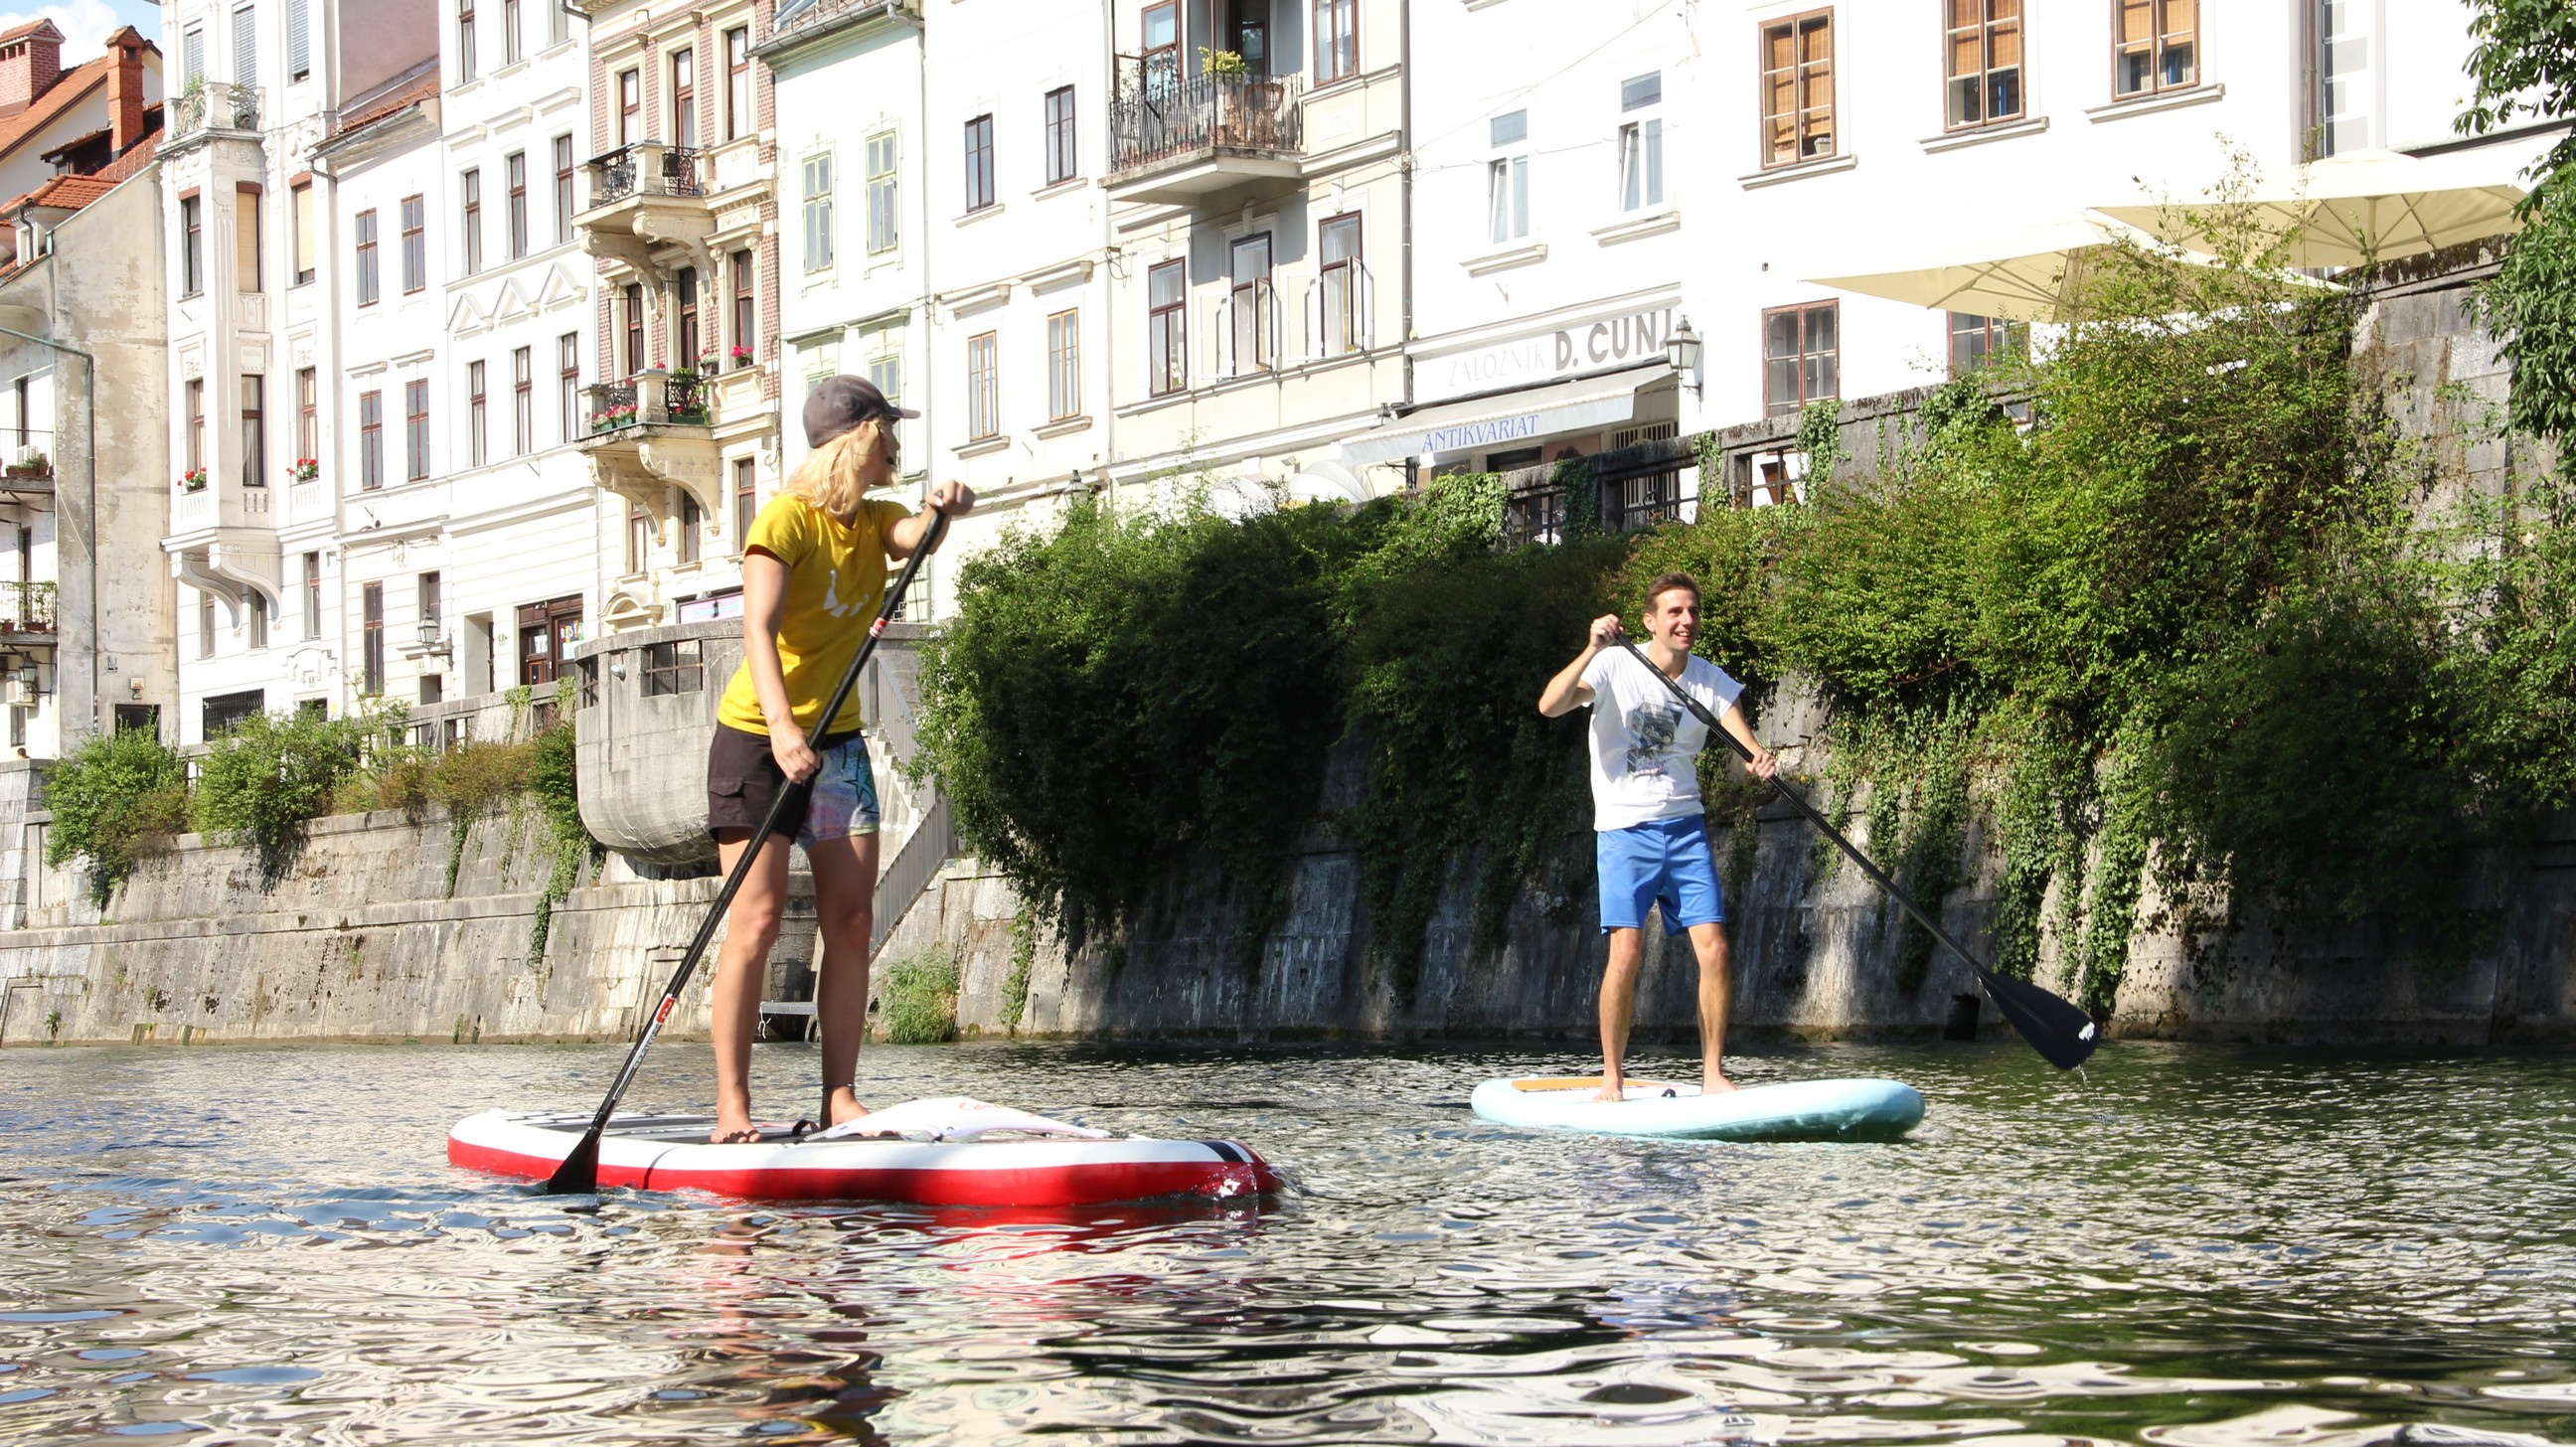 stand up paddle boarding in Ljubljana, Slovenia